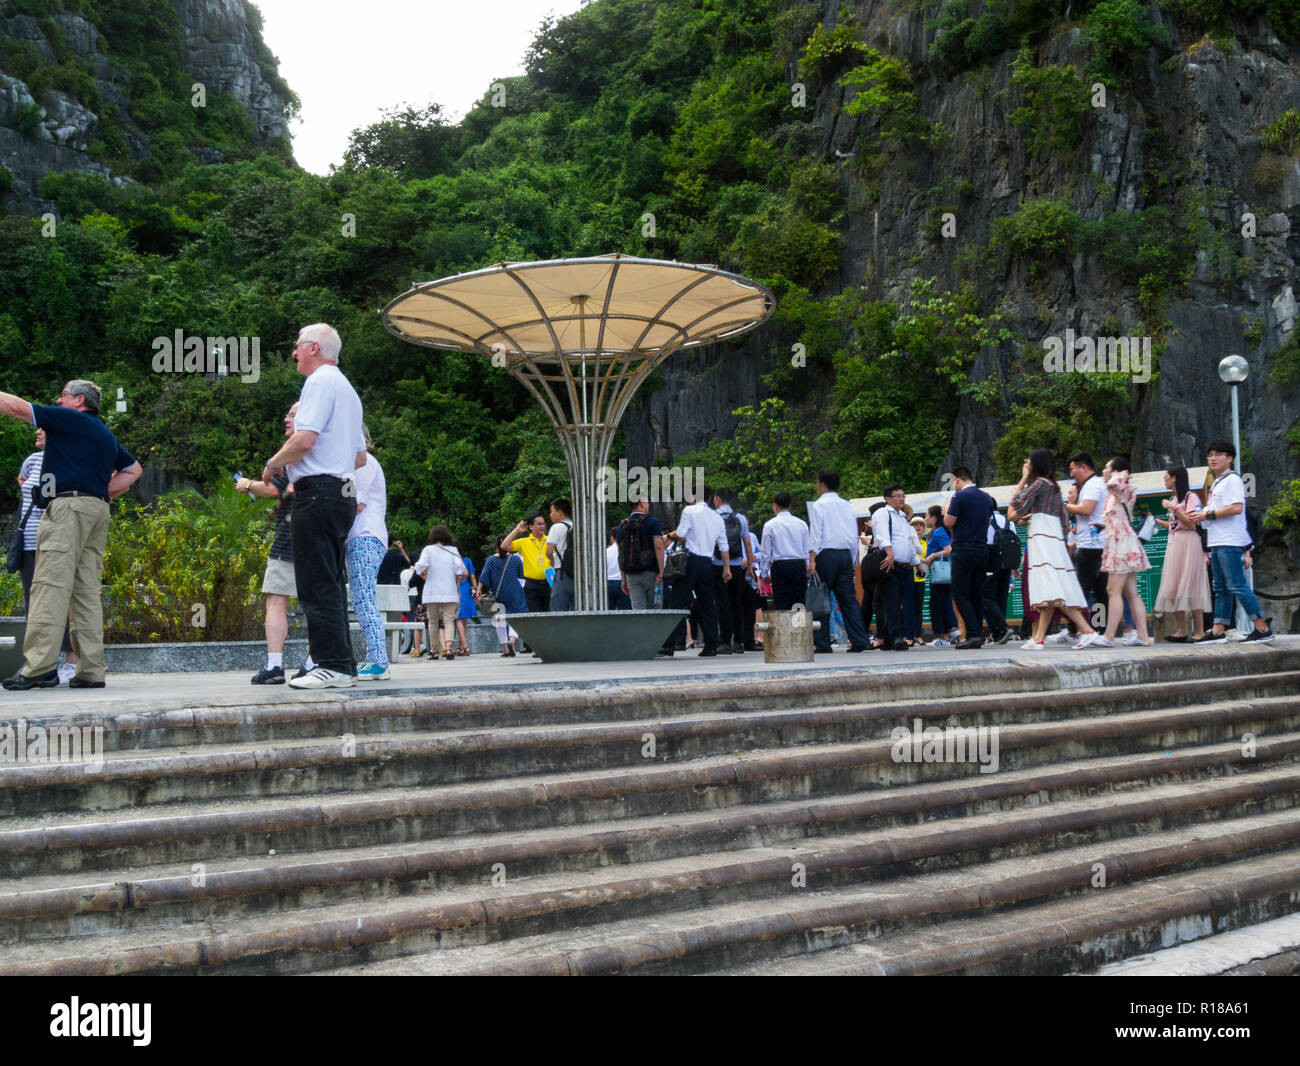 Tourists off junk cruise boats to visit one of caves in limestone cliffs Halong Bay South China Sea Vietnam Asia - Stock Image